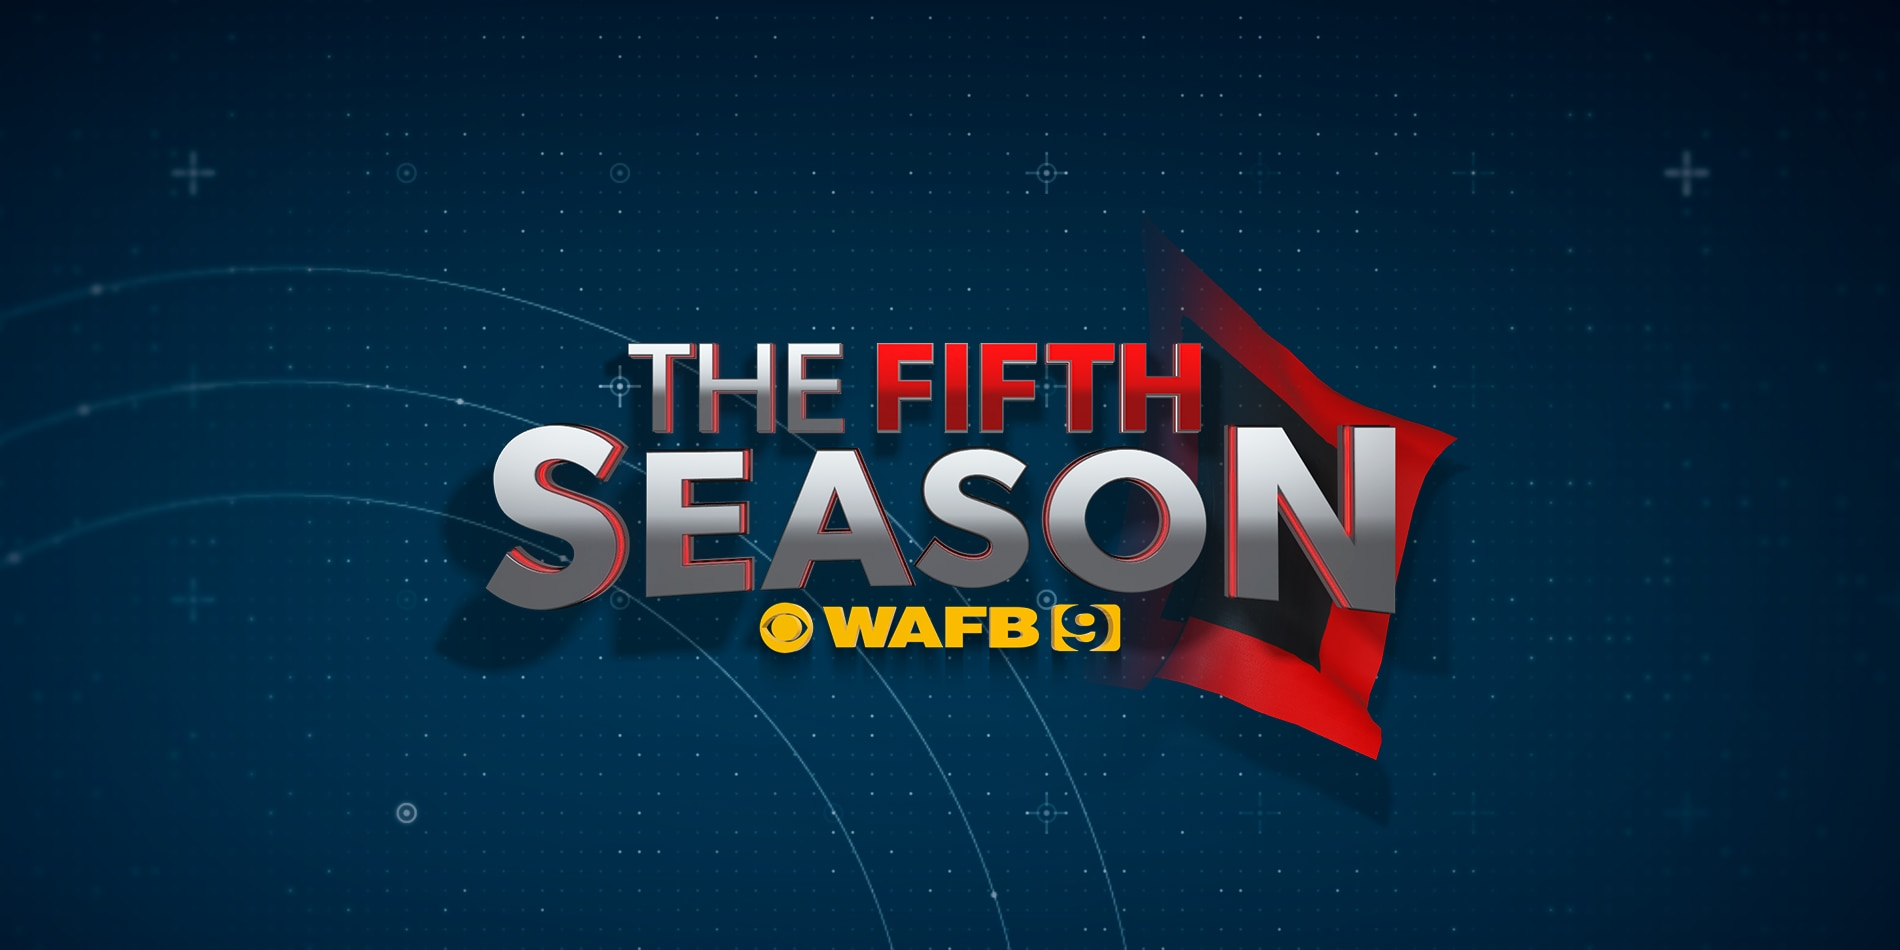 WATCH: WAFB's hurricane special, The Fifth Season